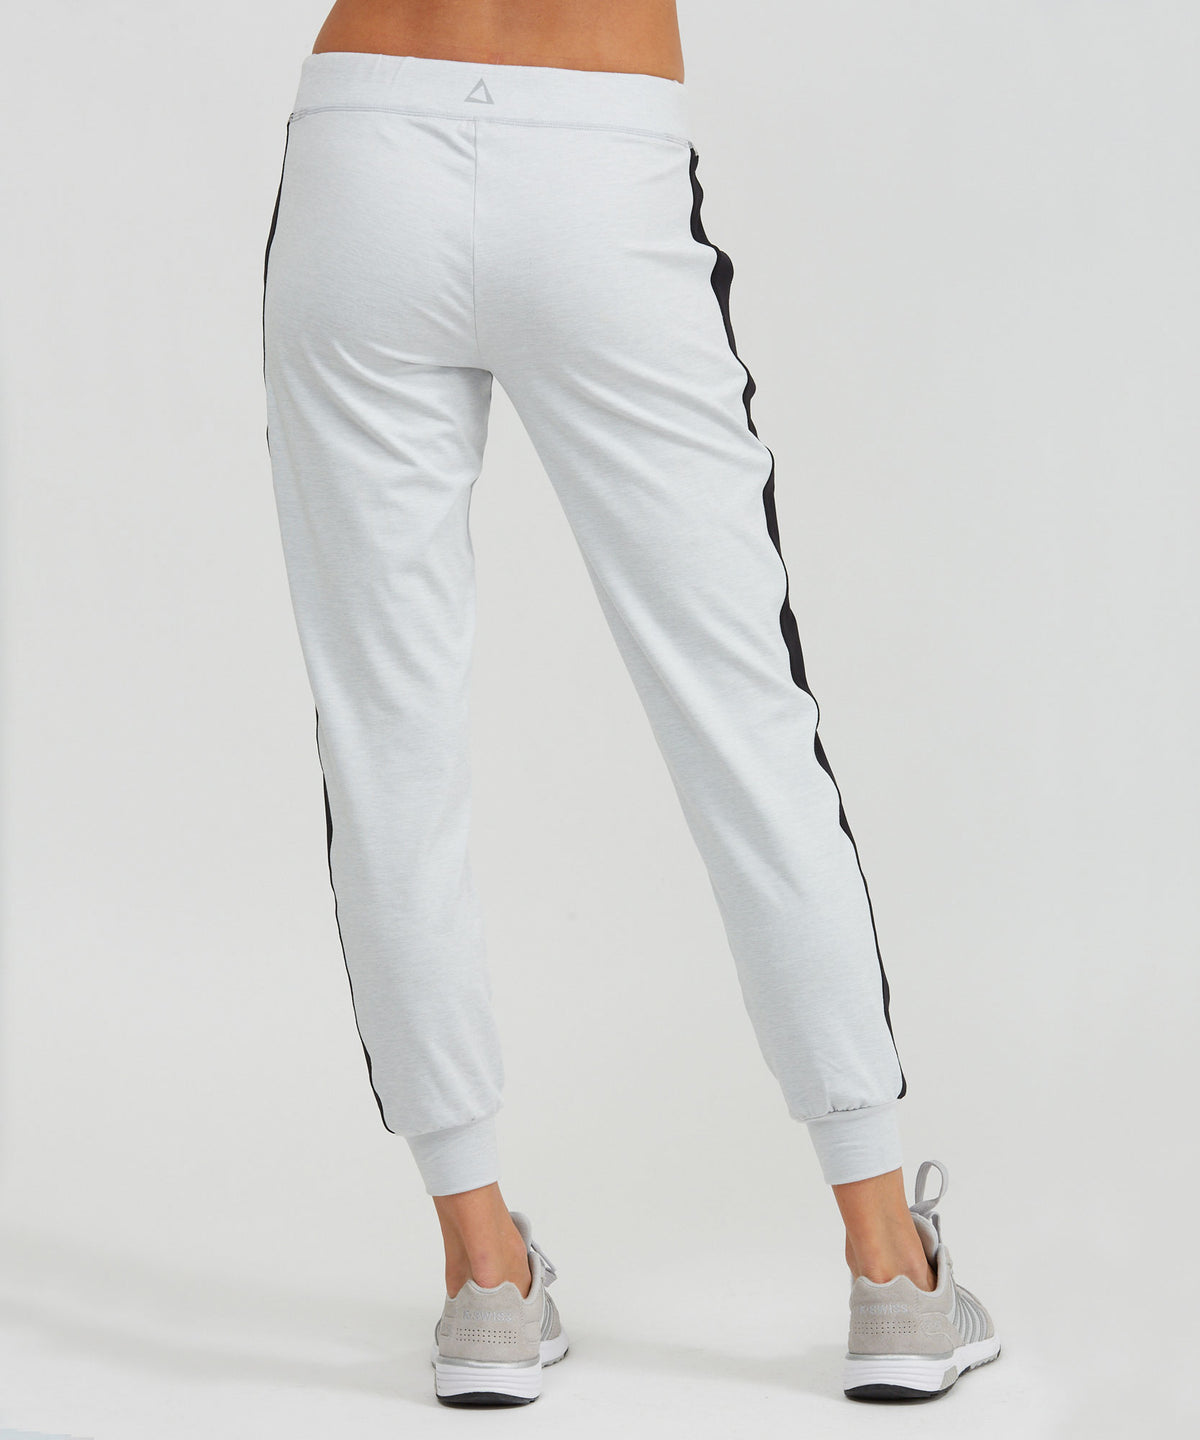 Urban Track Pant - Cloud Cloud Heather Urban Track Pant - Women's Activewear Pant by PRISMSPORT